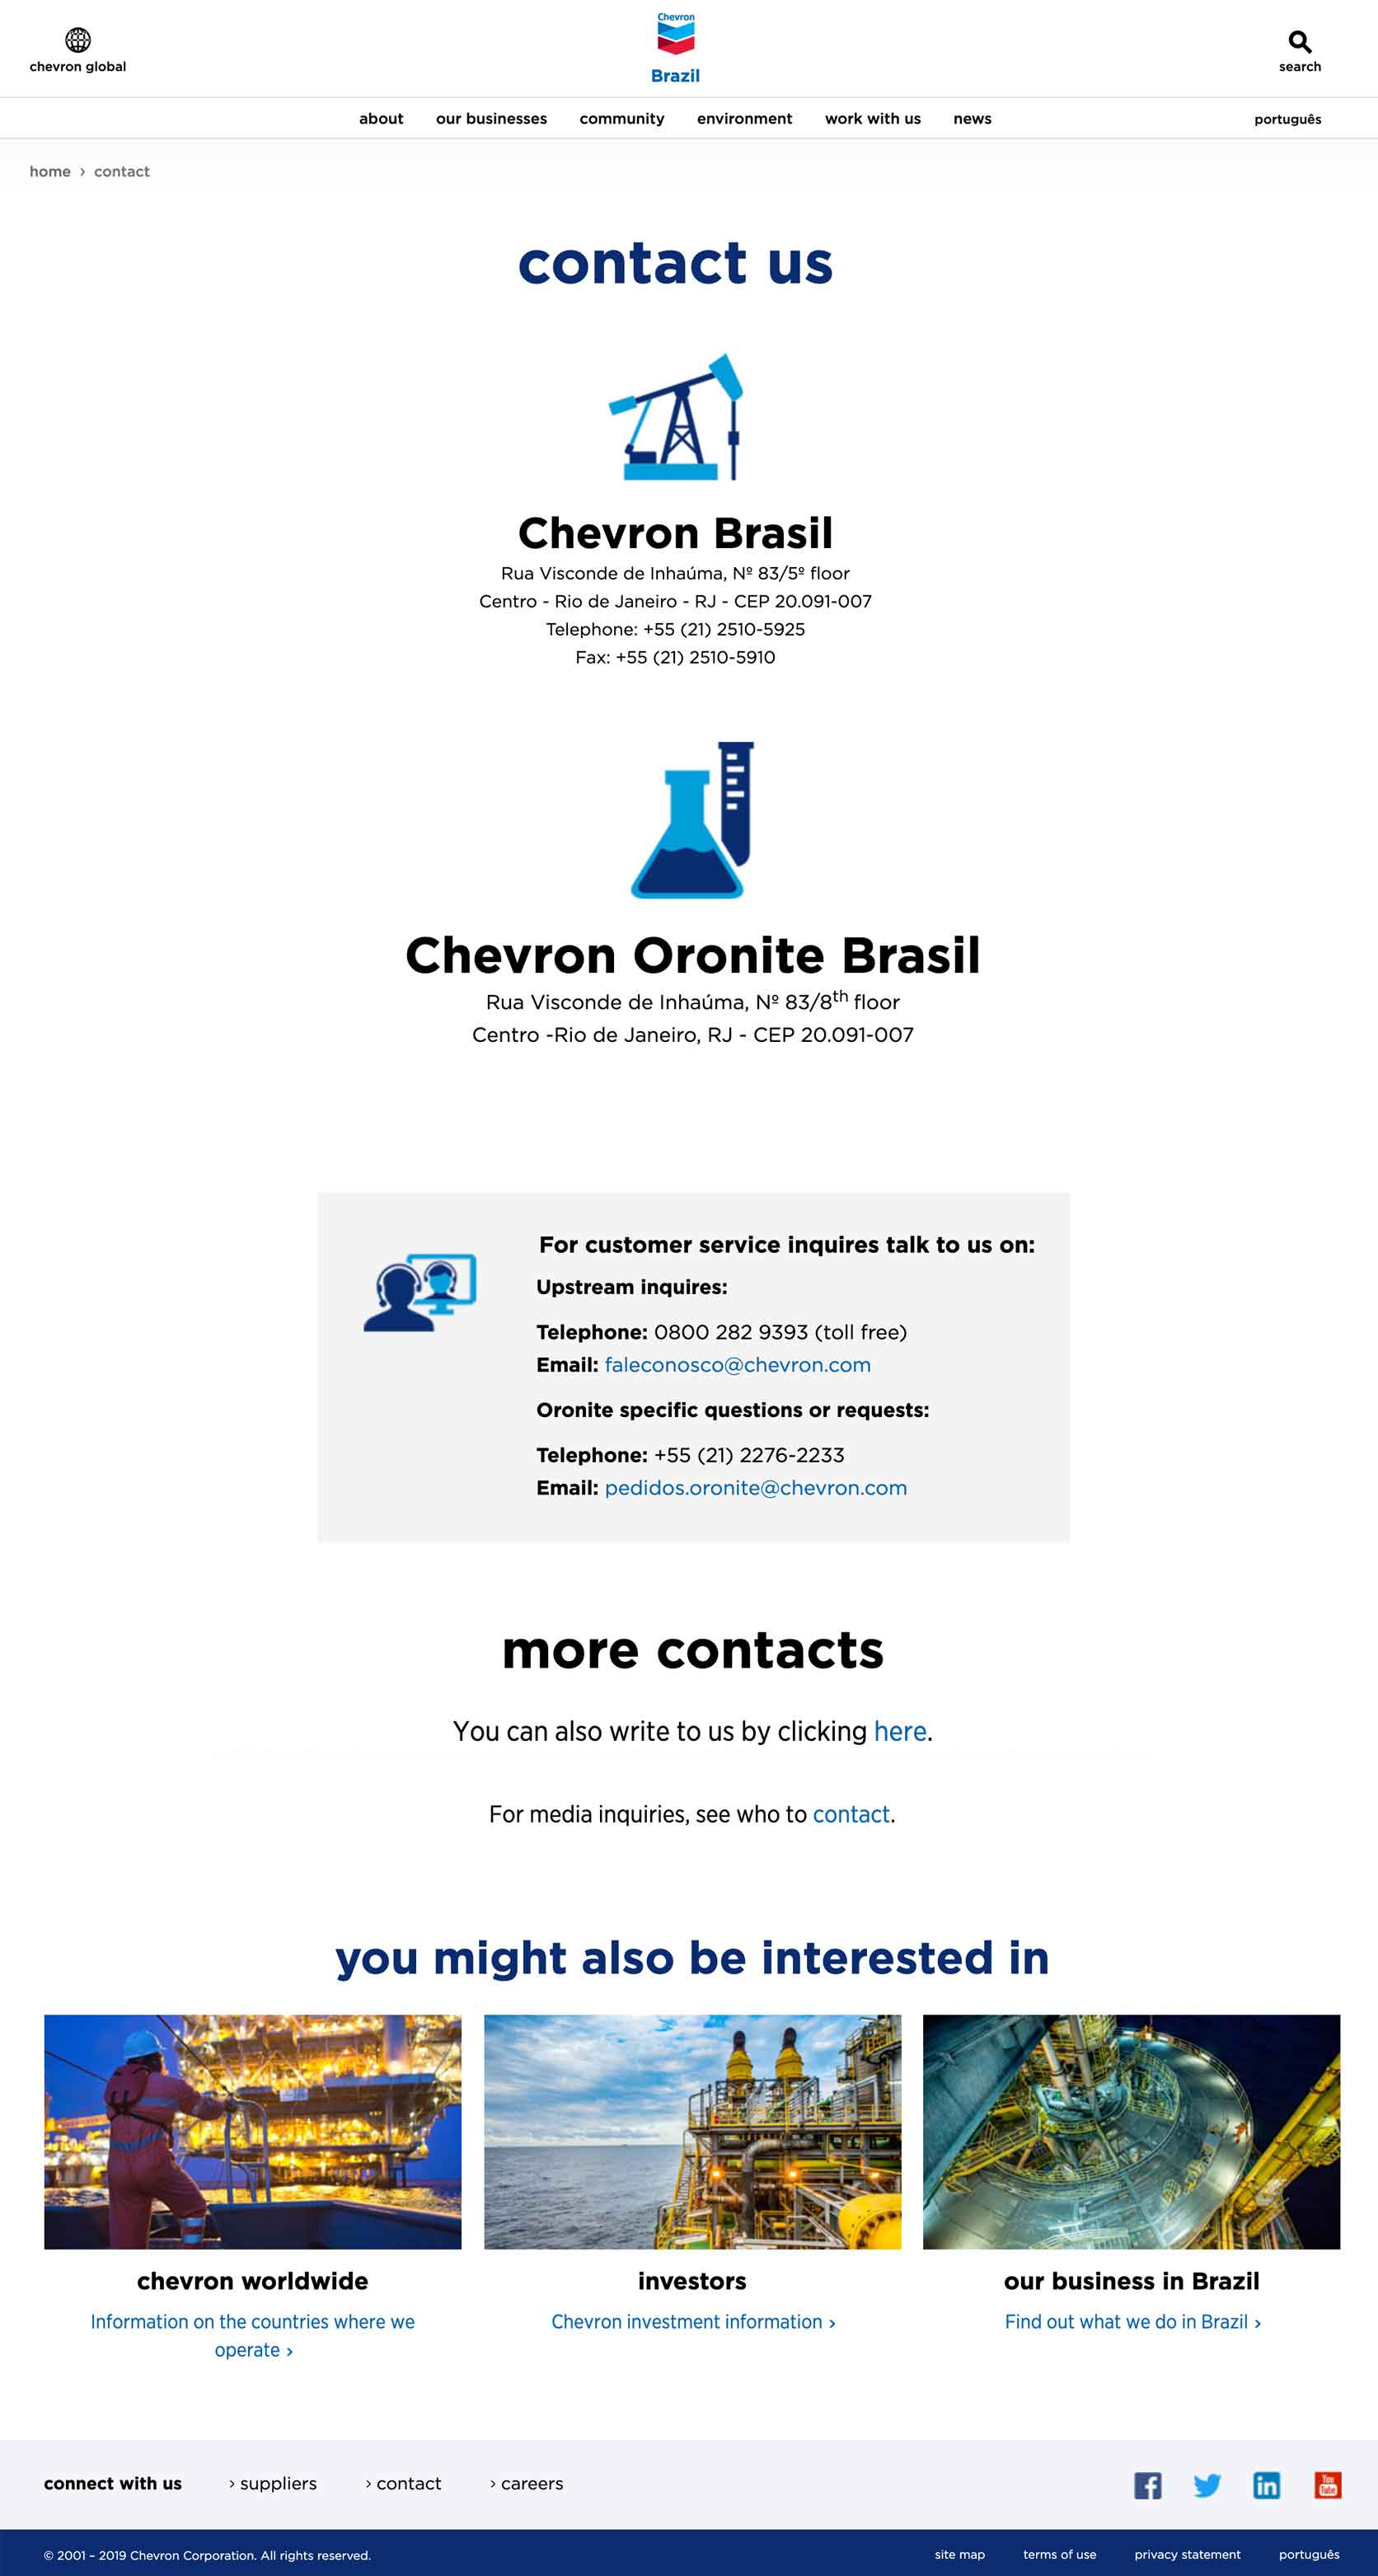 Chevron Brazil includes all location-specific contact information.